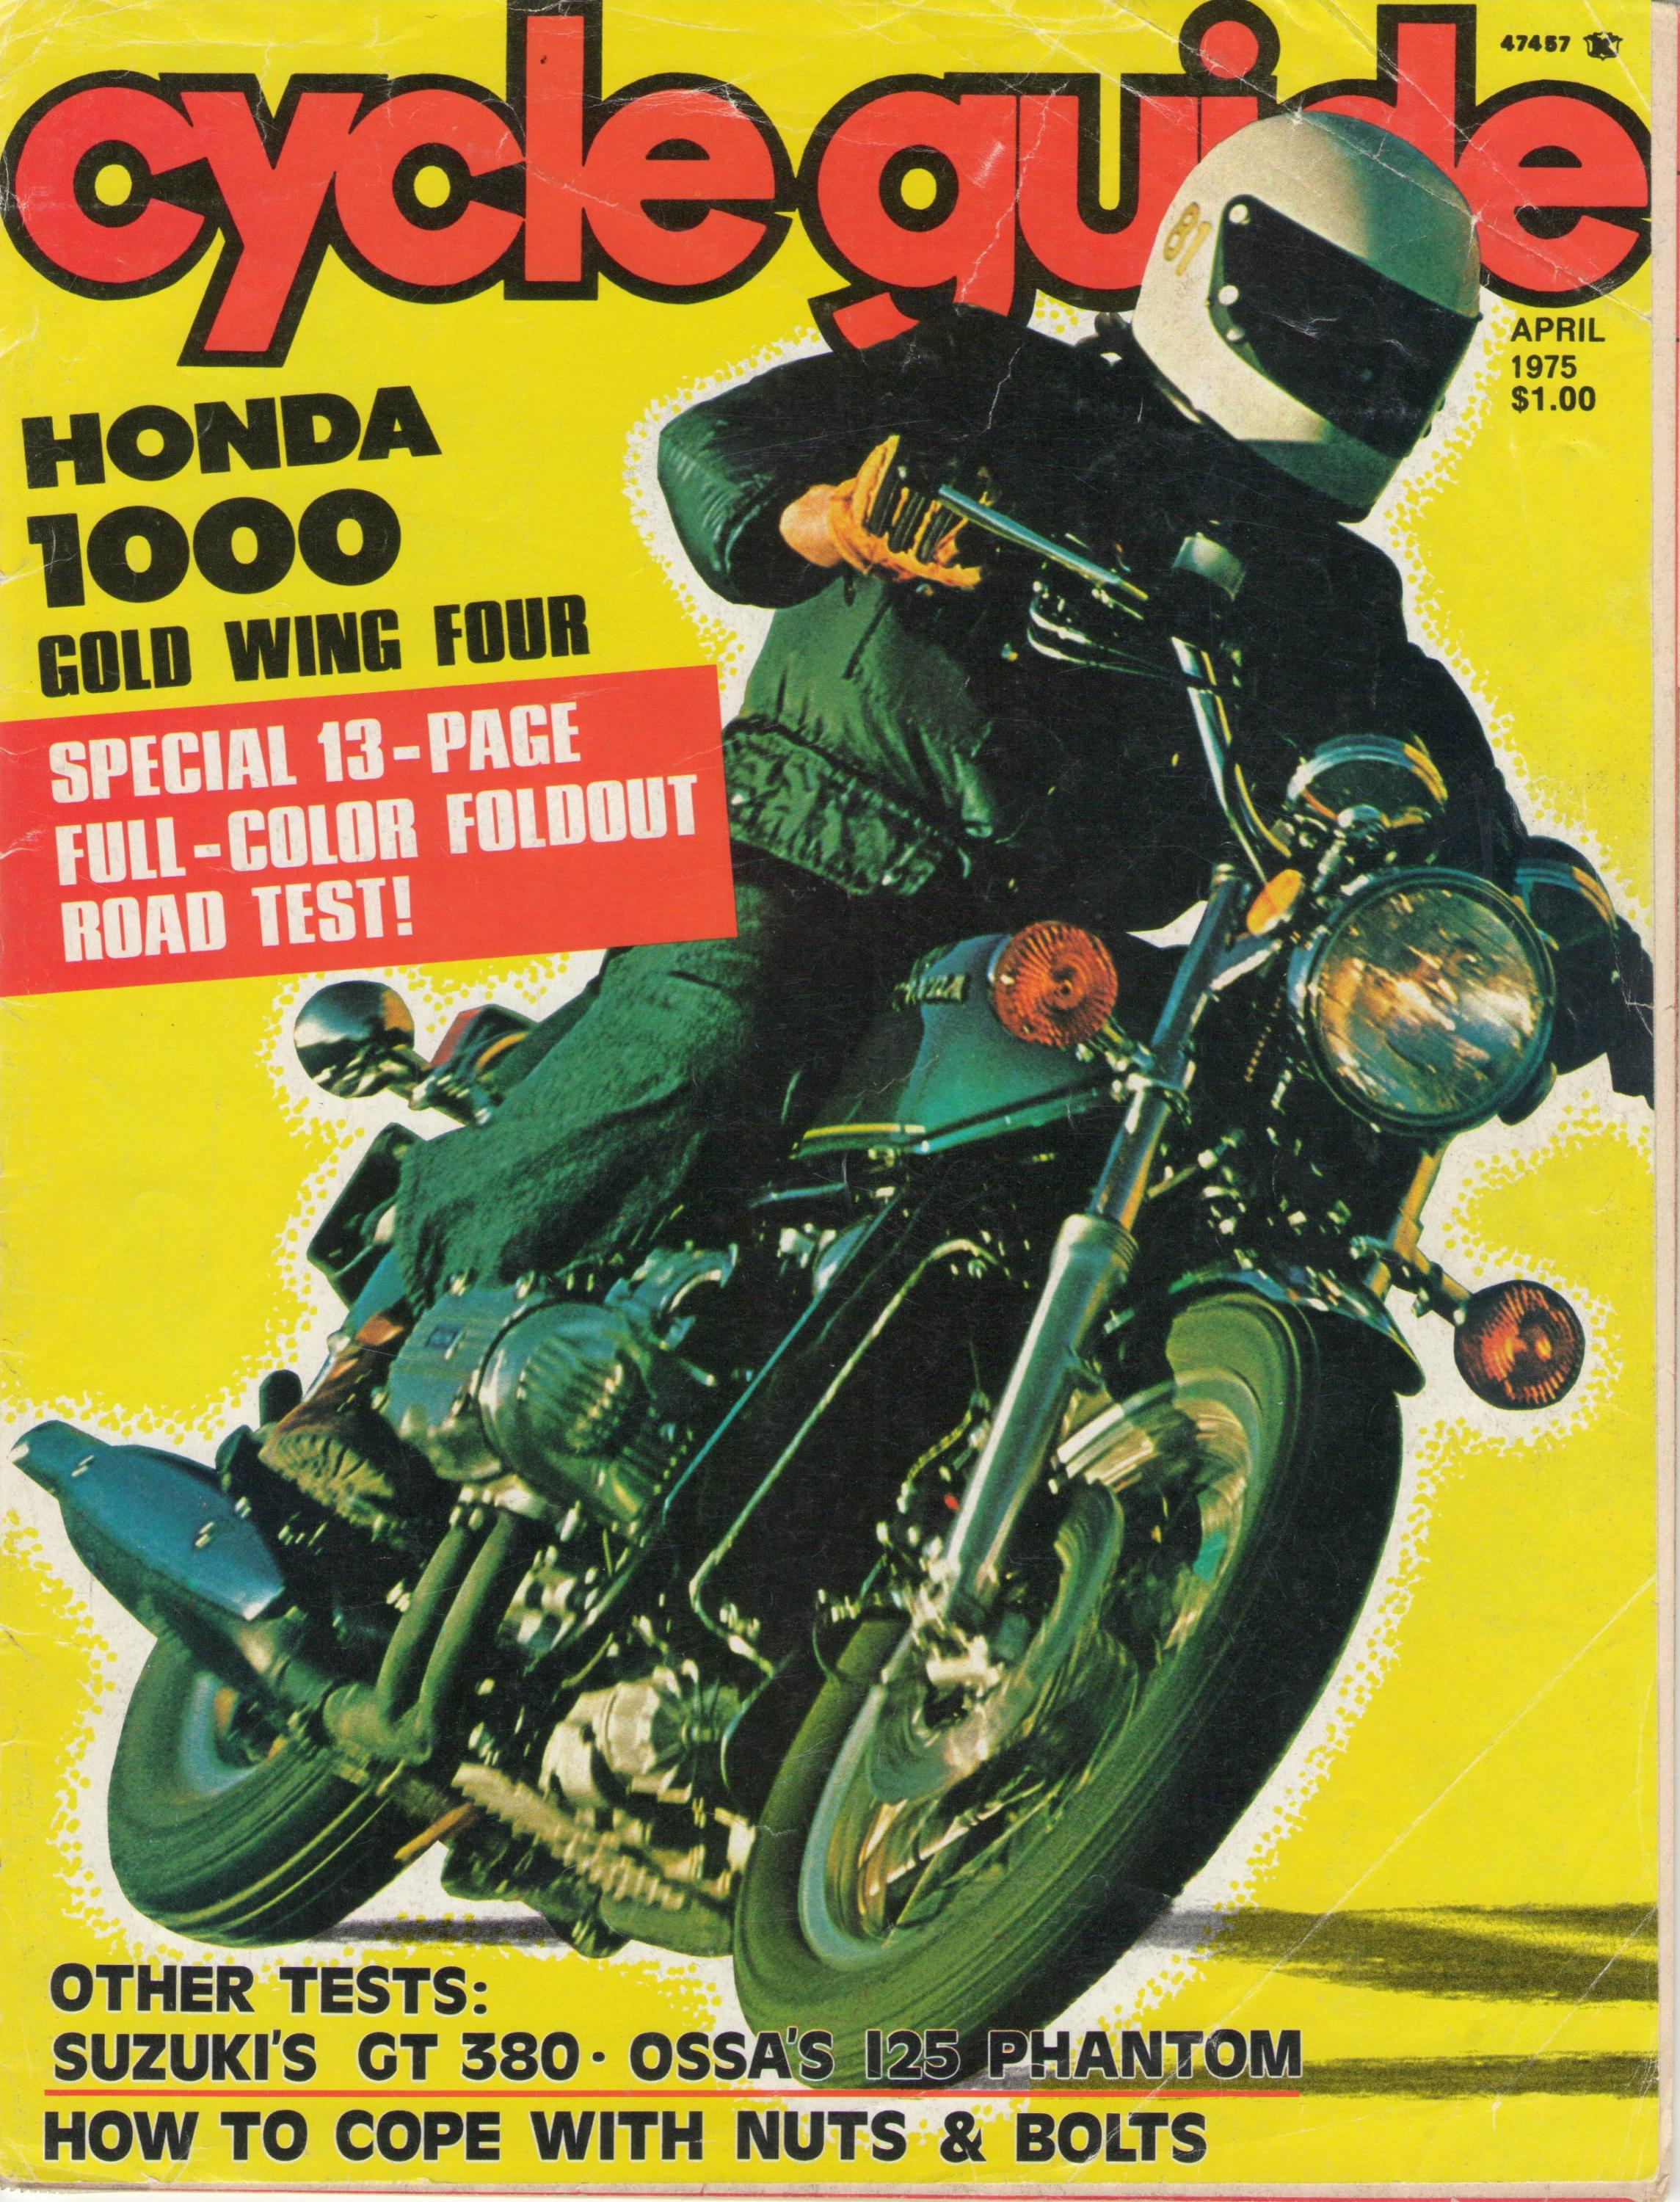 1975 GL-1000 test report Cycle Guide Magazine April 1975-gl-1000-test-report-cover.jpg